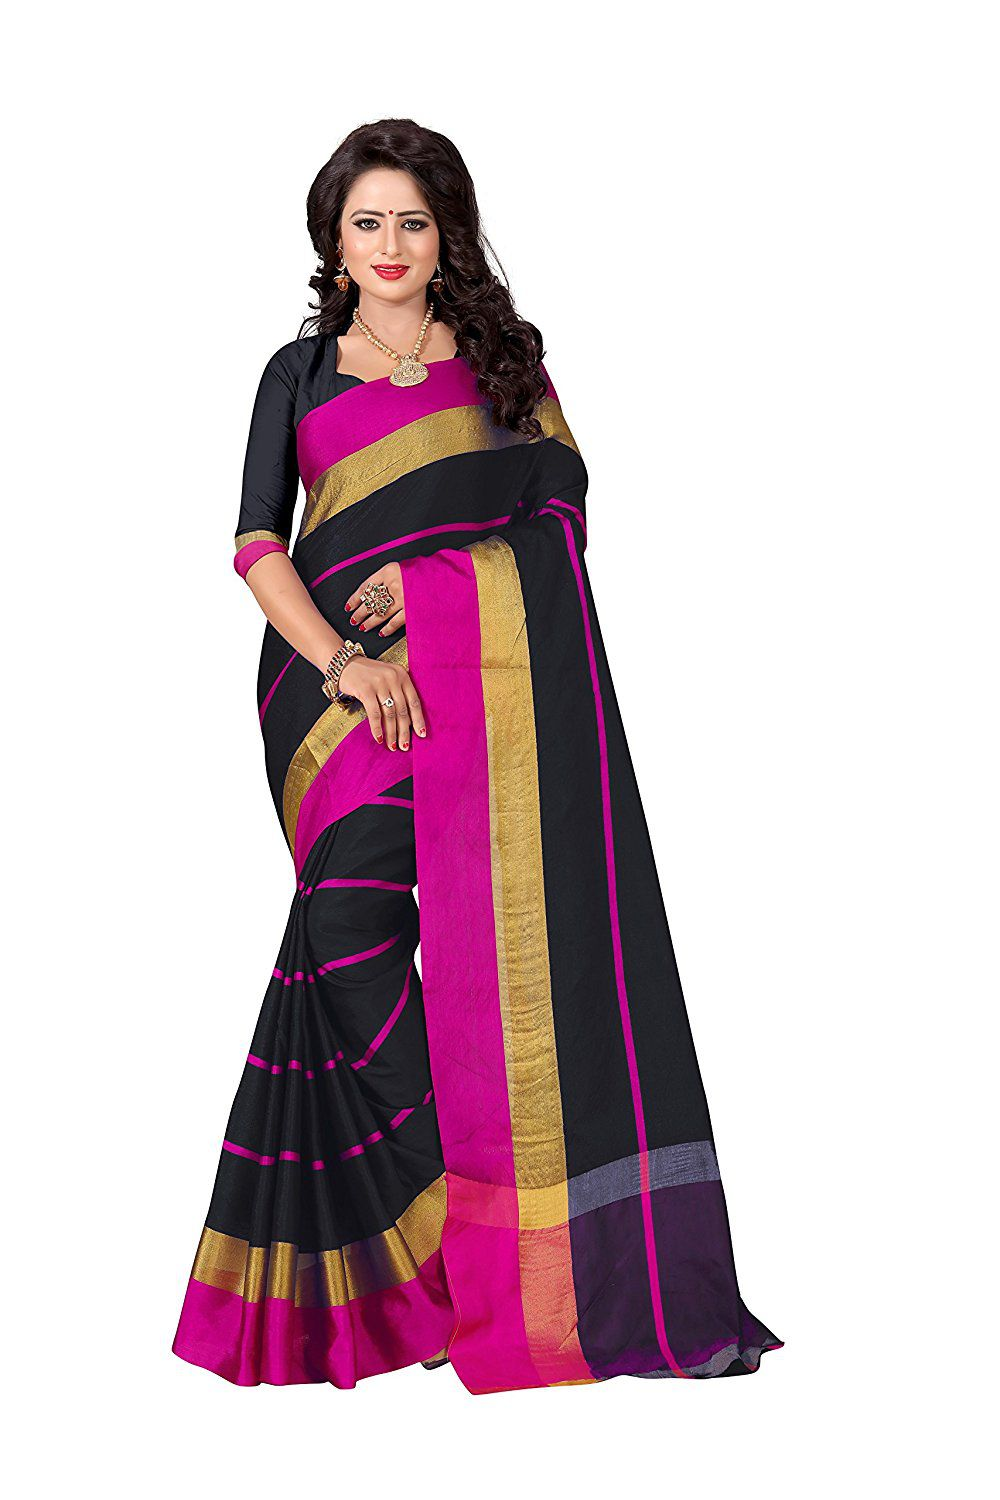 WALKNSHOP Black Cotton Saree